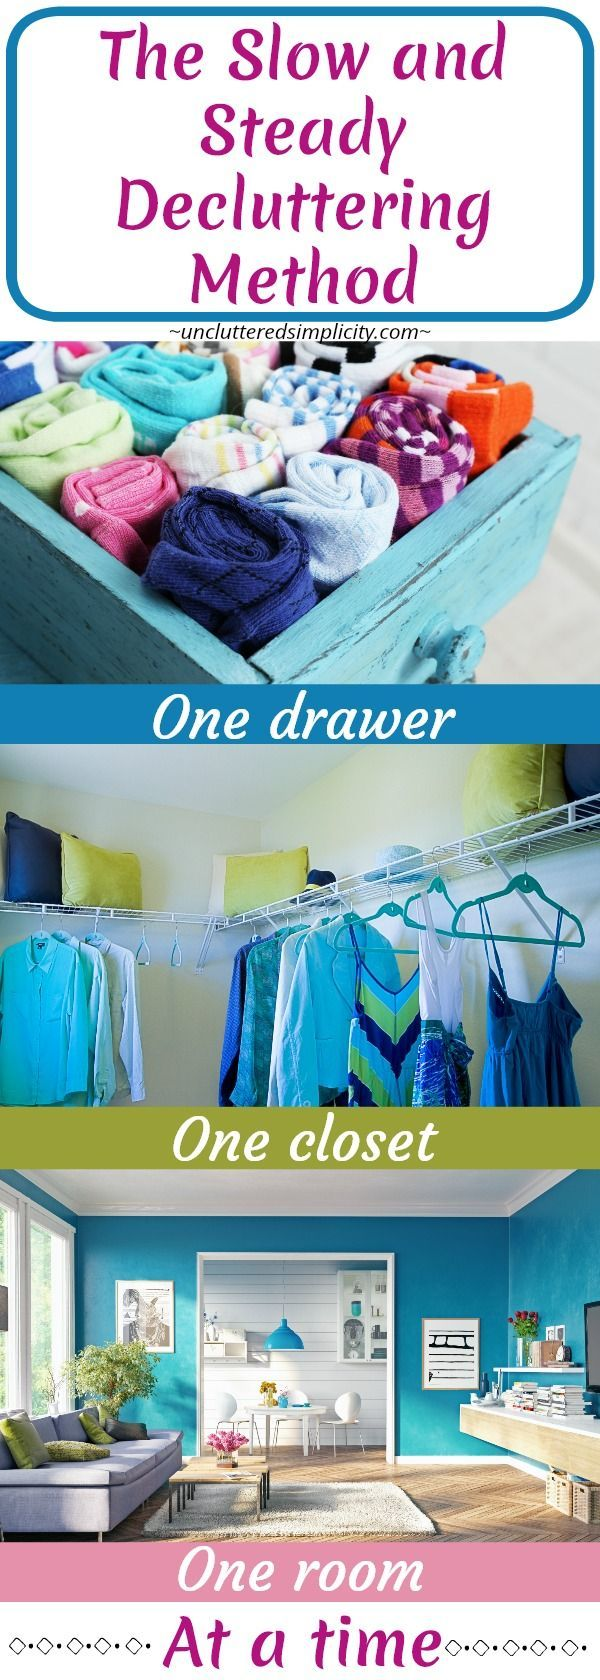 how to declutter   declutter and organize your home   decluttering methods  